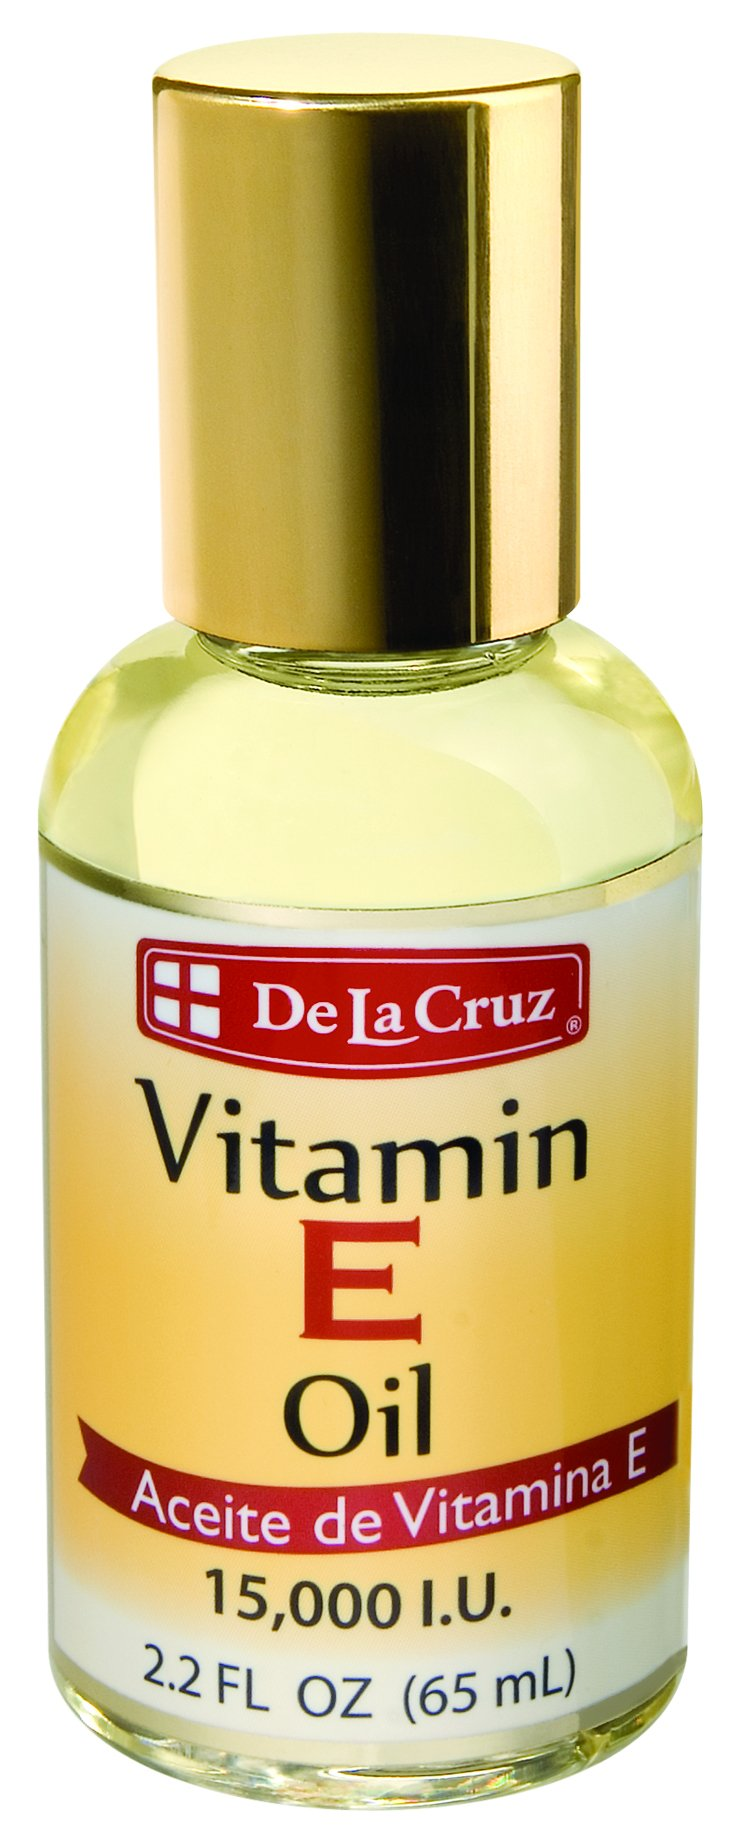 De La Cruz Vitamin E Oil 15,000 IU, No Preservatives, Artificial Colors or Fragrances